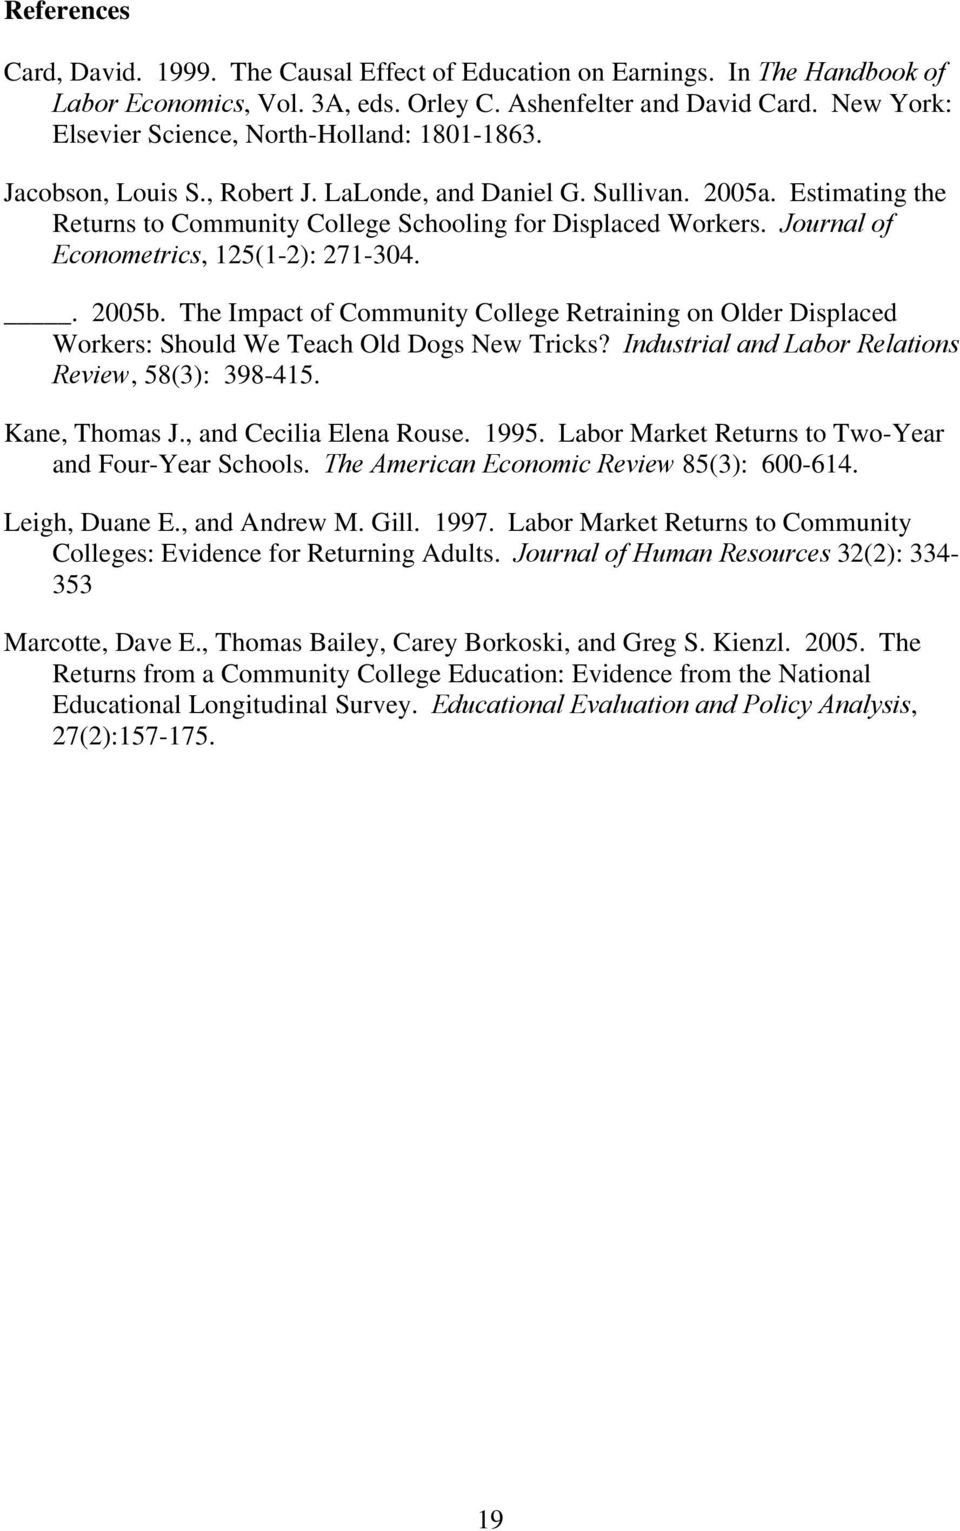 Journal of Econometrics, 125(1-2): 271-304.. 2005b. The Impact of Community College Retraining on Older Displaced Workers: Should We Teach Old Dogs New Tricks?